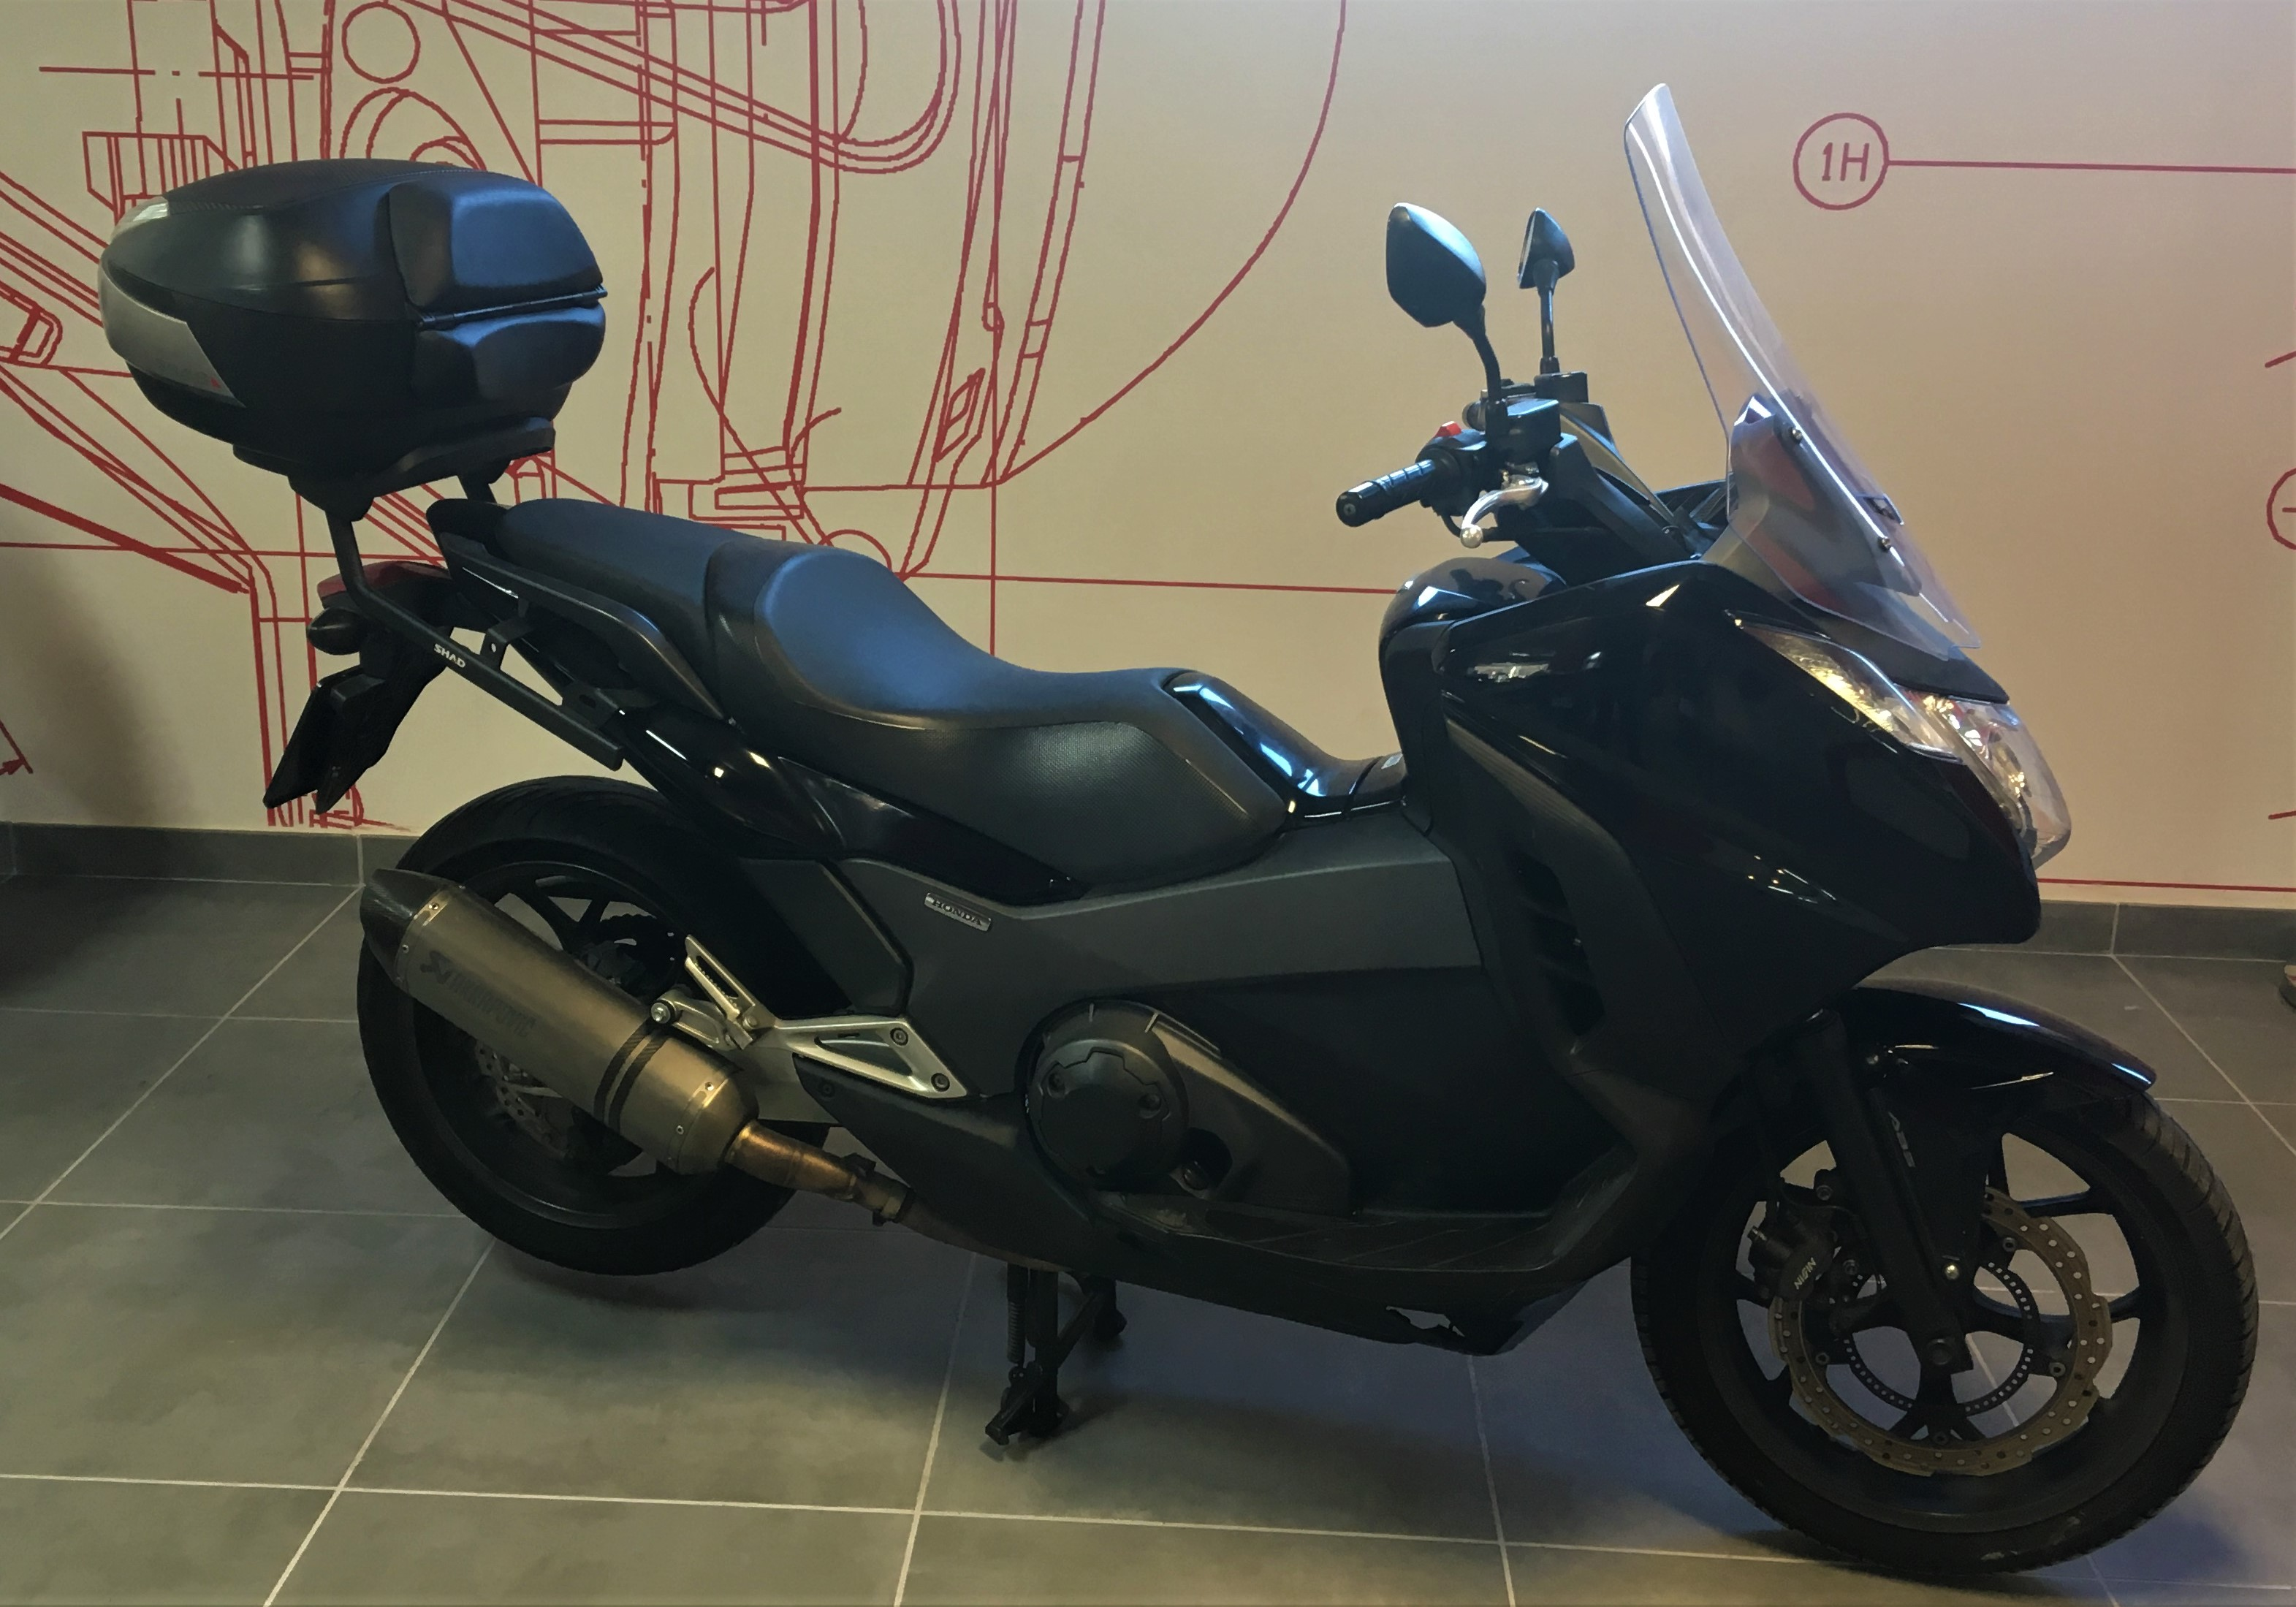 Honda Selection - Motos de ocasi�n